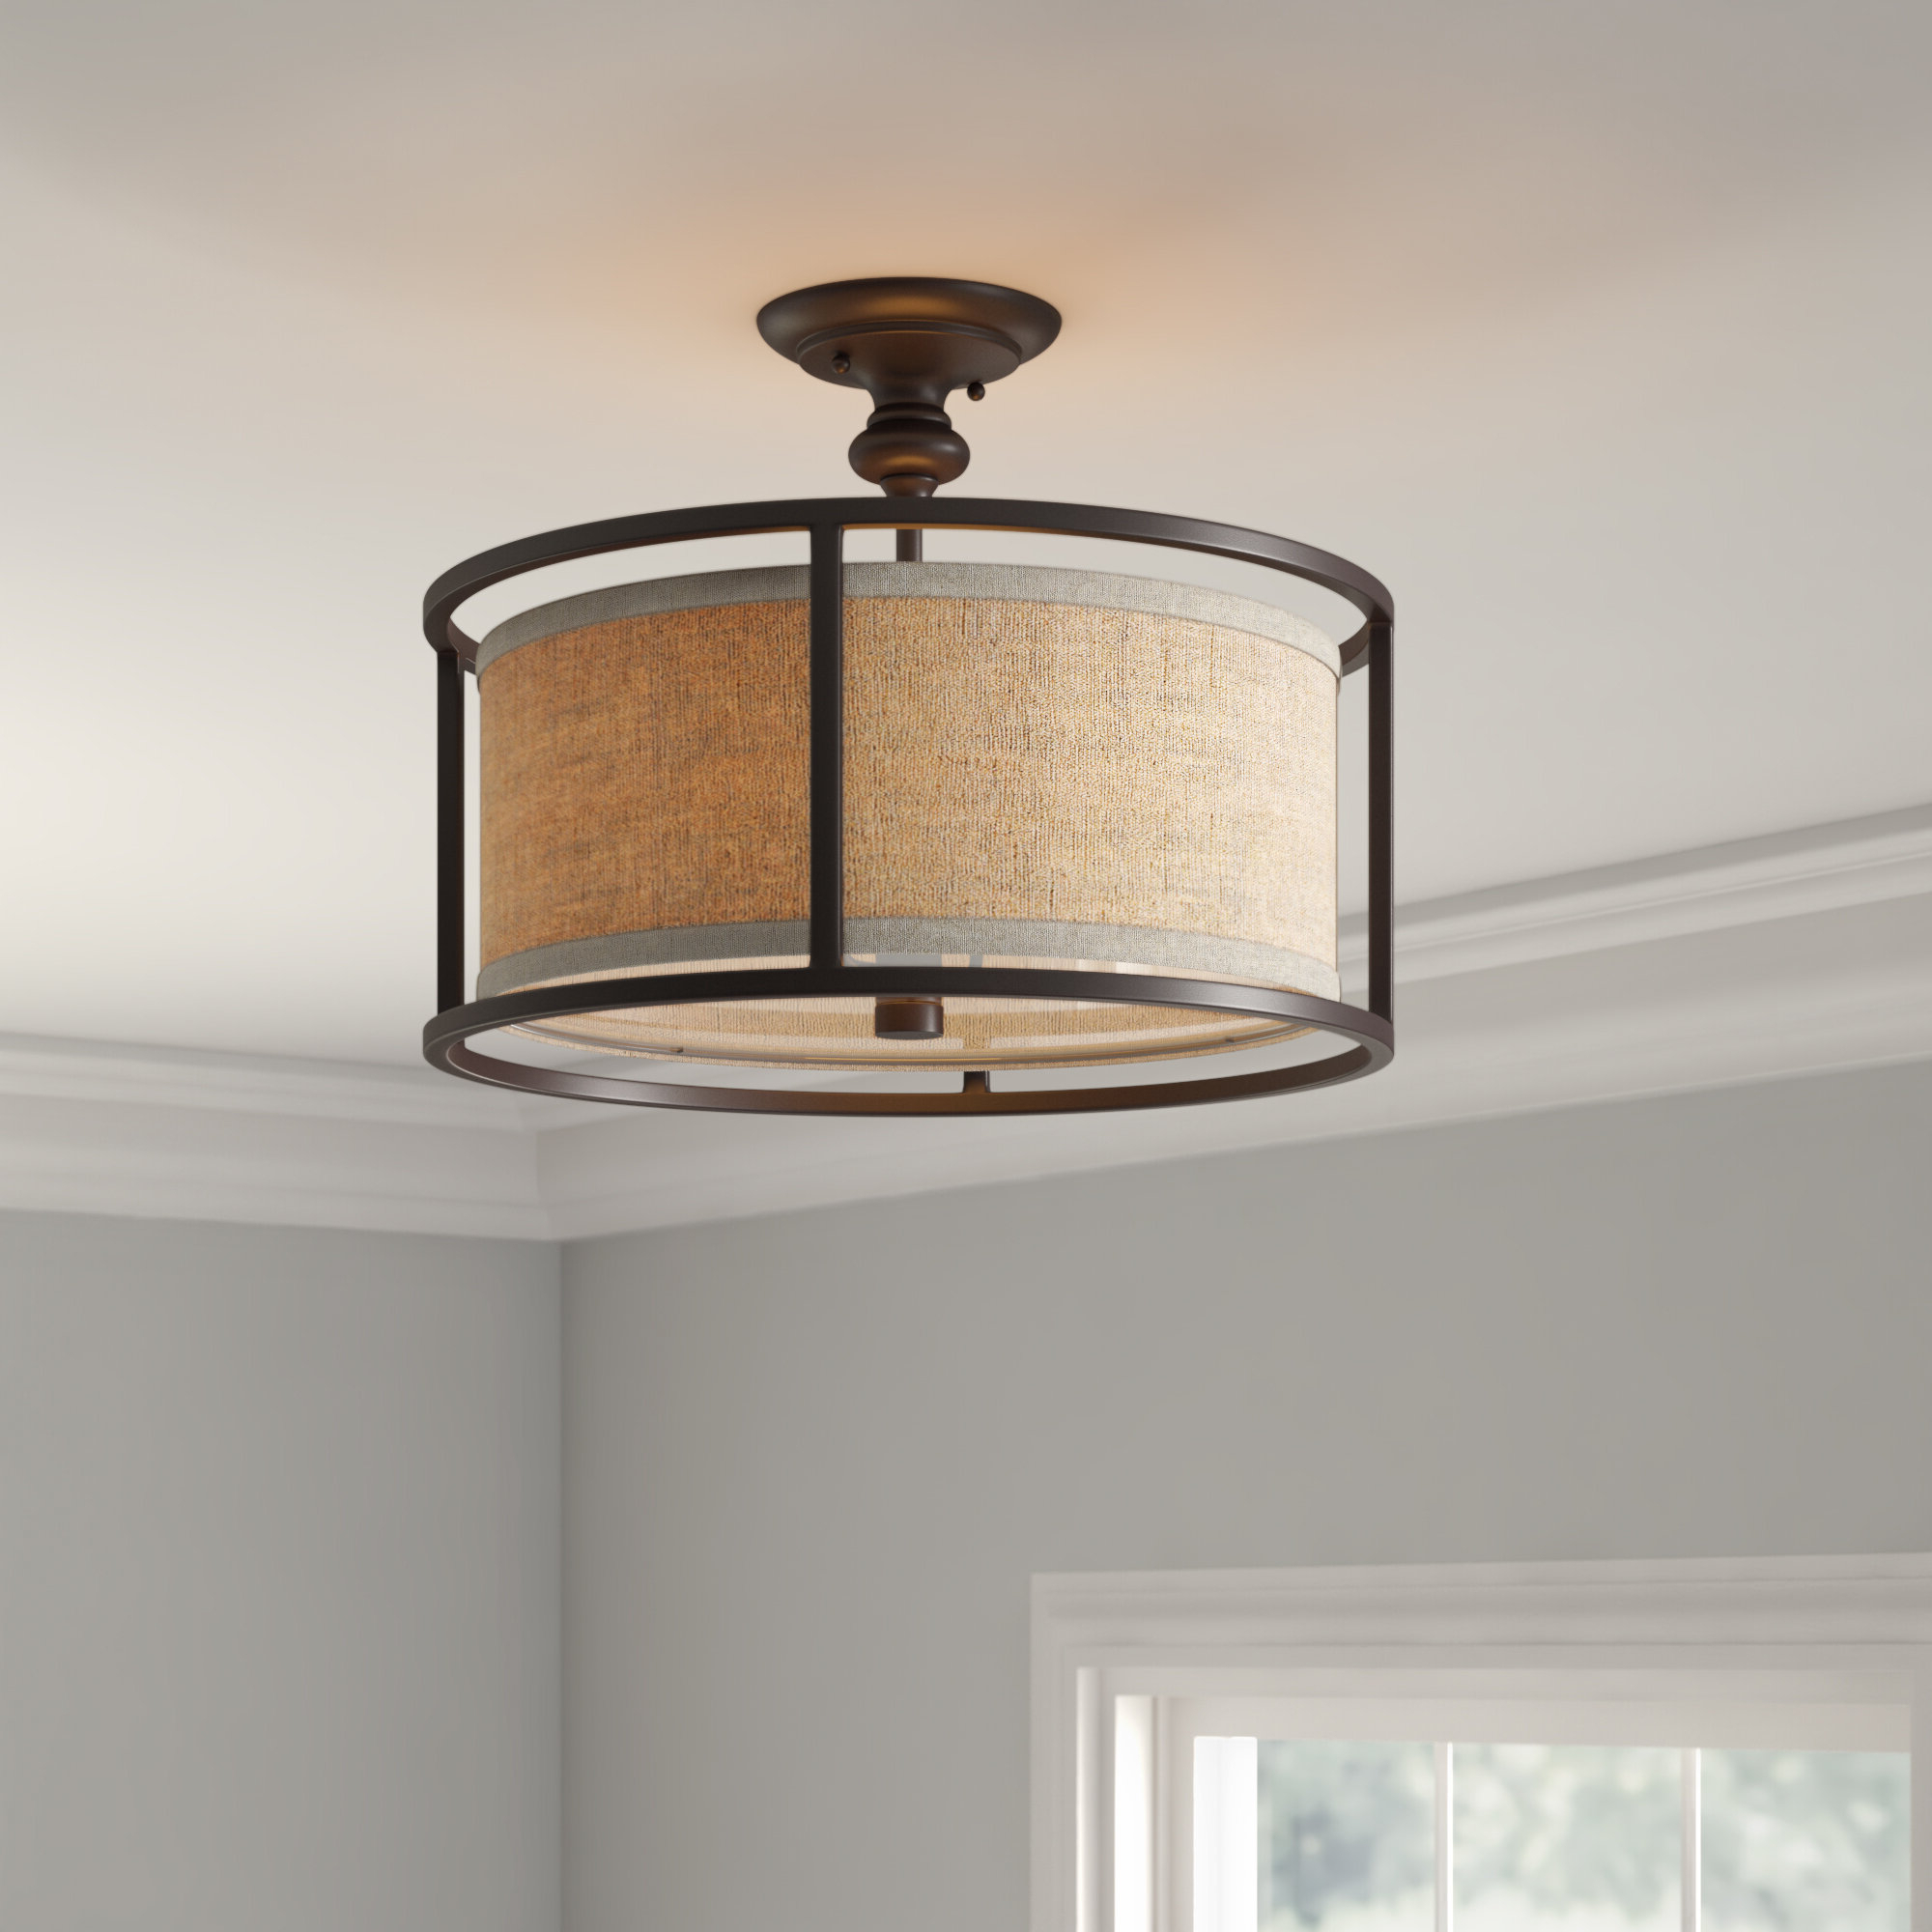 Elmhurst 3 Light Semi Flush Mount Within 2020 Emaria 3 Light Single Drum Pendants (View 2 of 20)